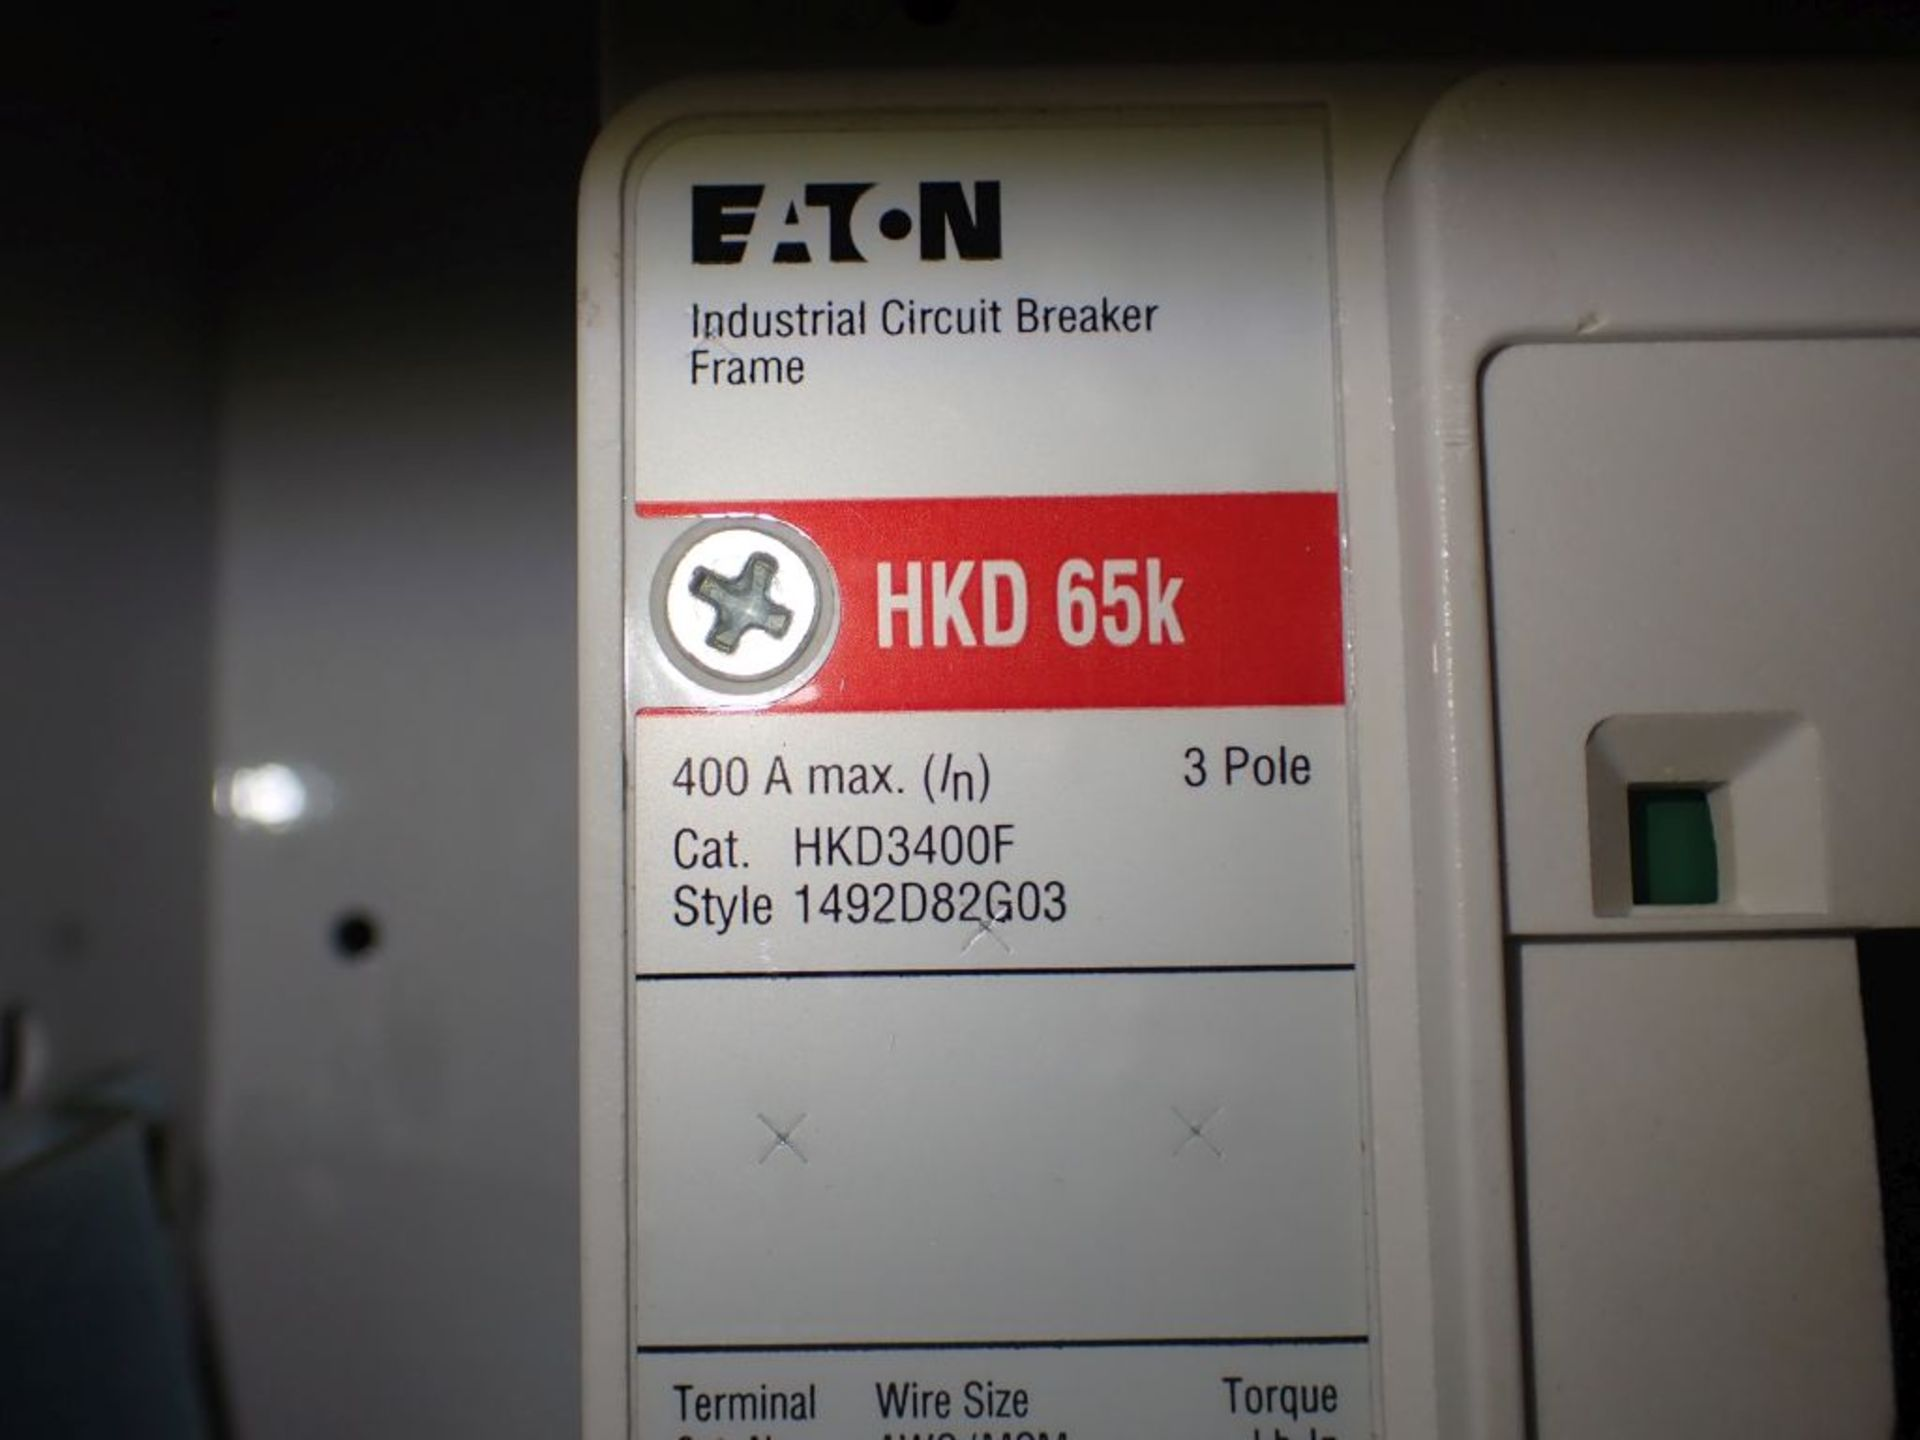 Eaton Freedom Flashgard Motor Control Center | SCR0753278, 480V; (1) INCB-250A, with 400A - Image 27 of 69